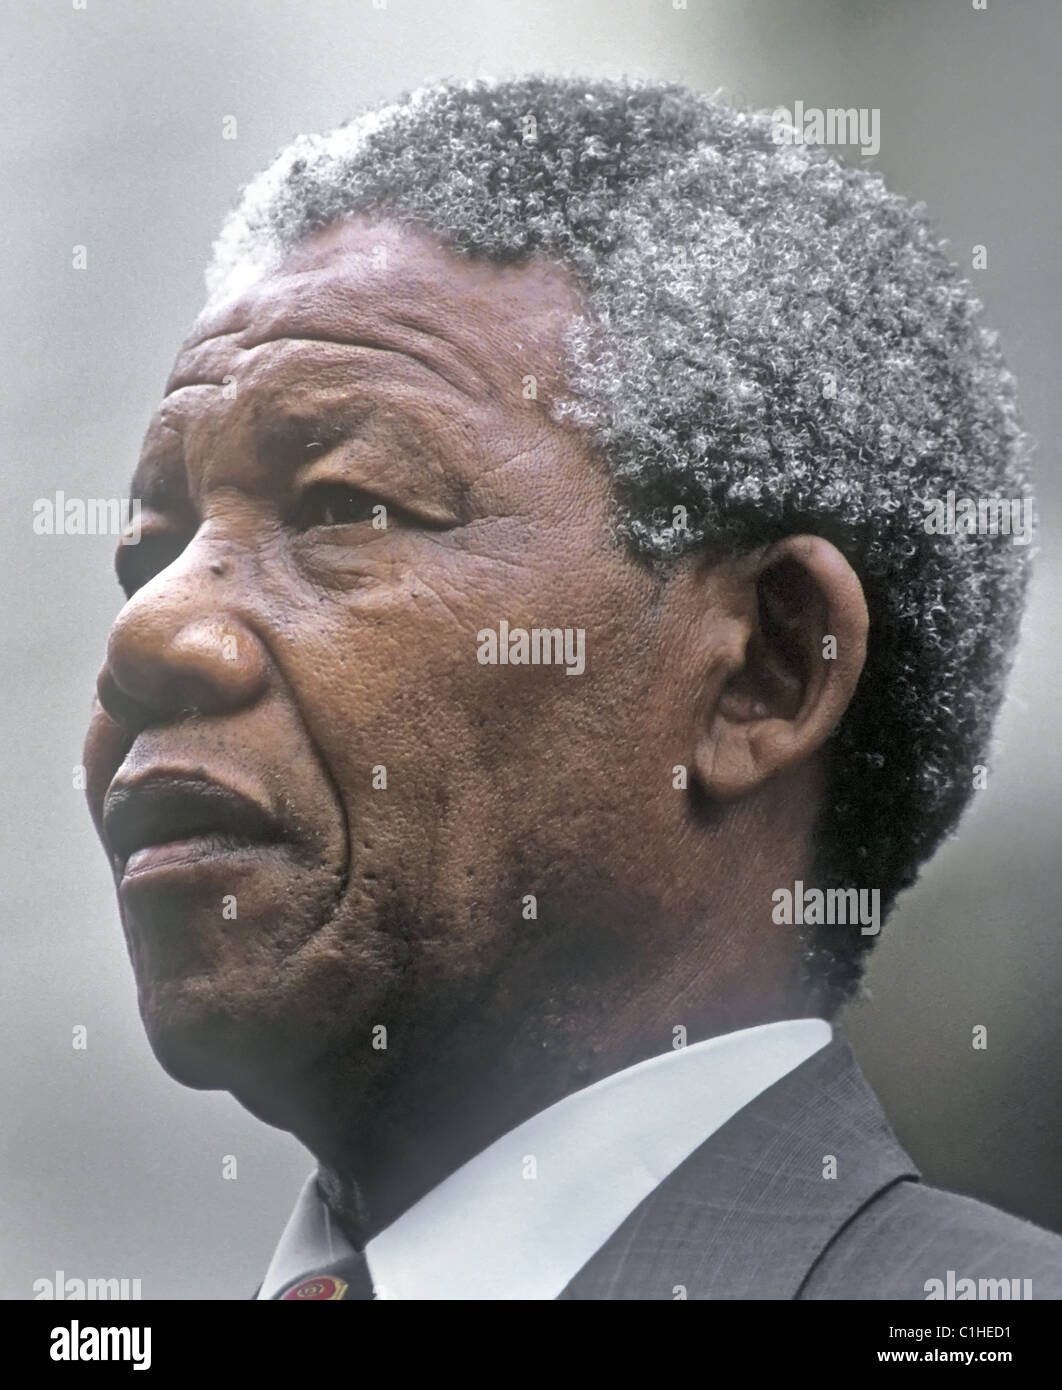 Nelson Mandela during his visit to New York, June 20, 1990. - Stock Image